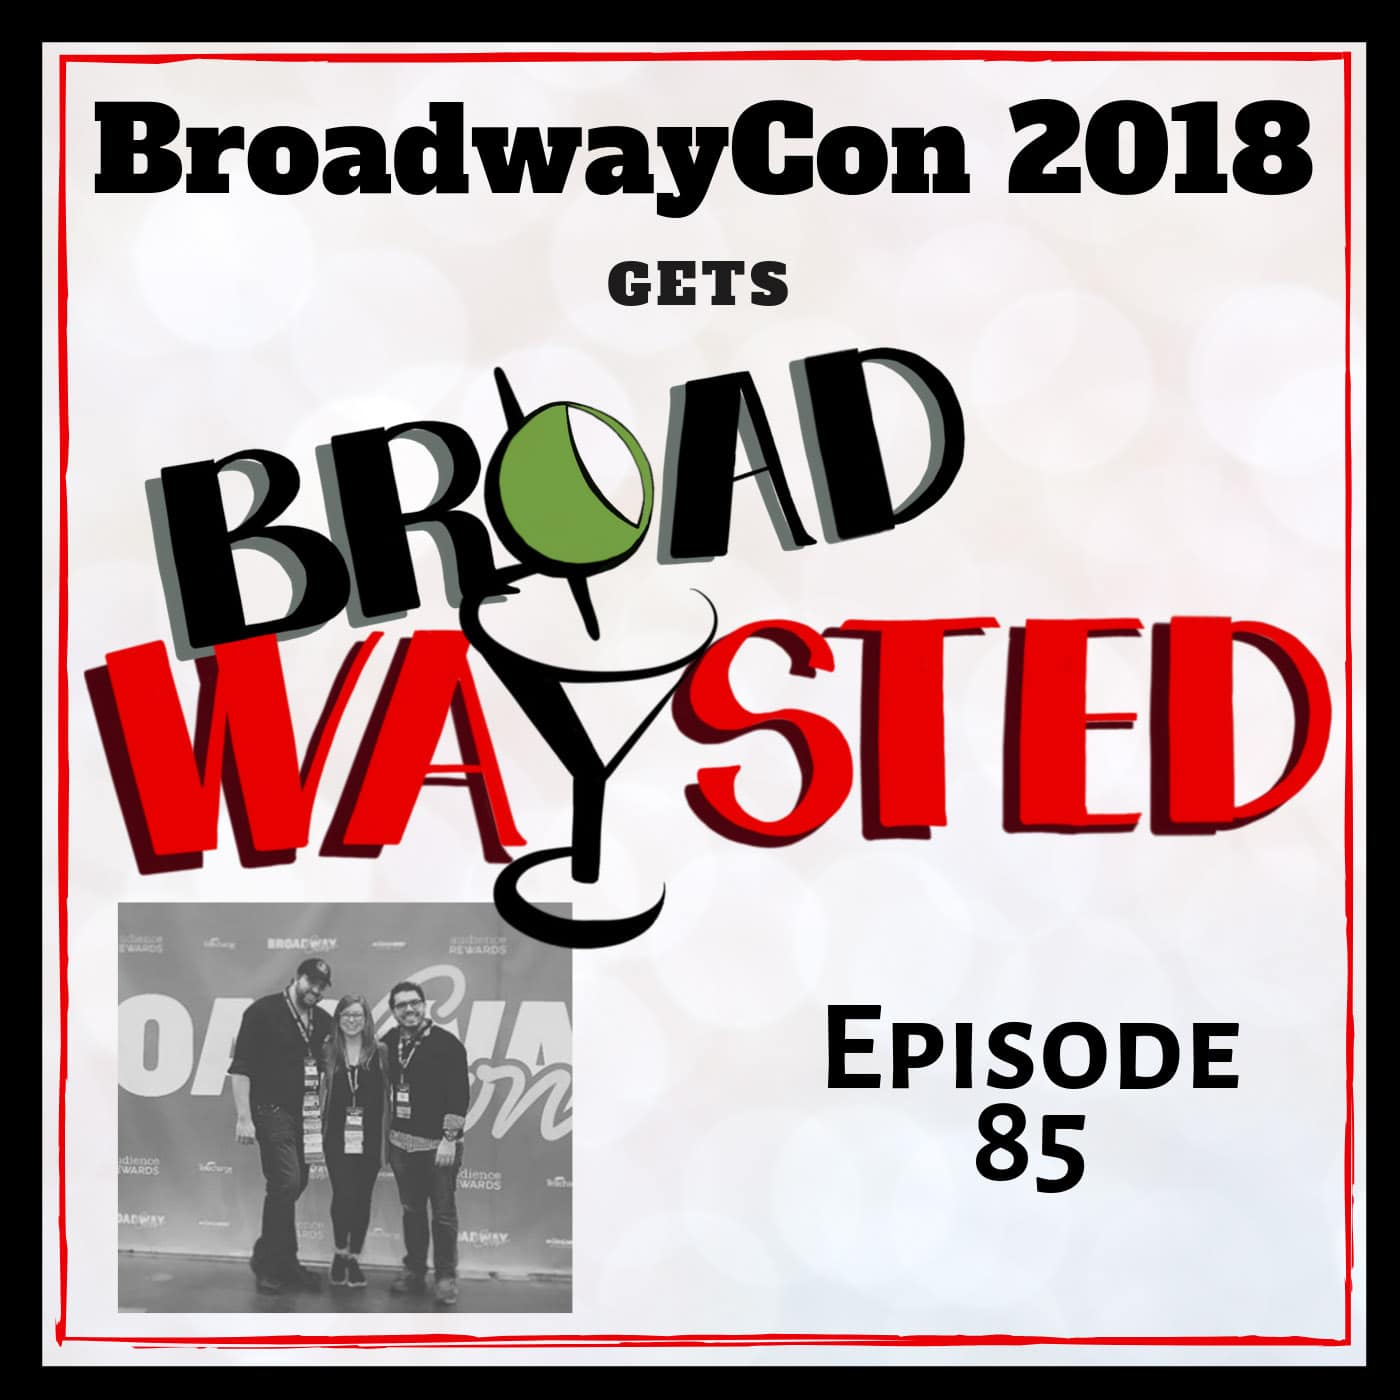 Broadwaysted Ep 85 BroawayCon